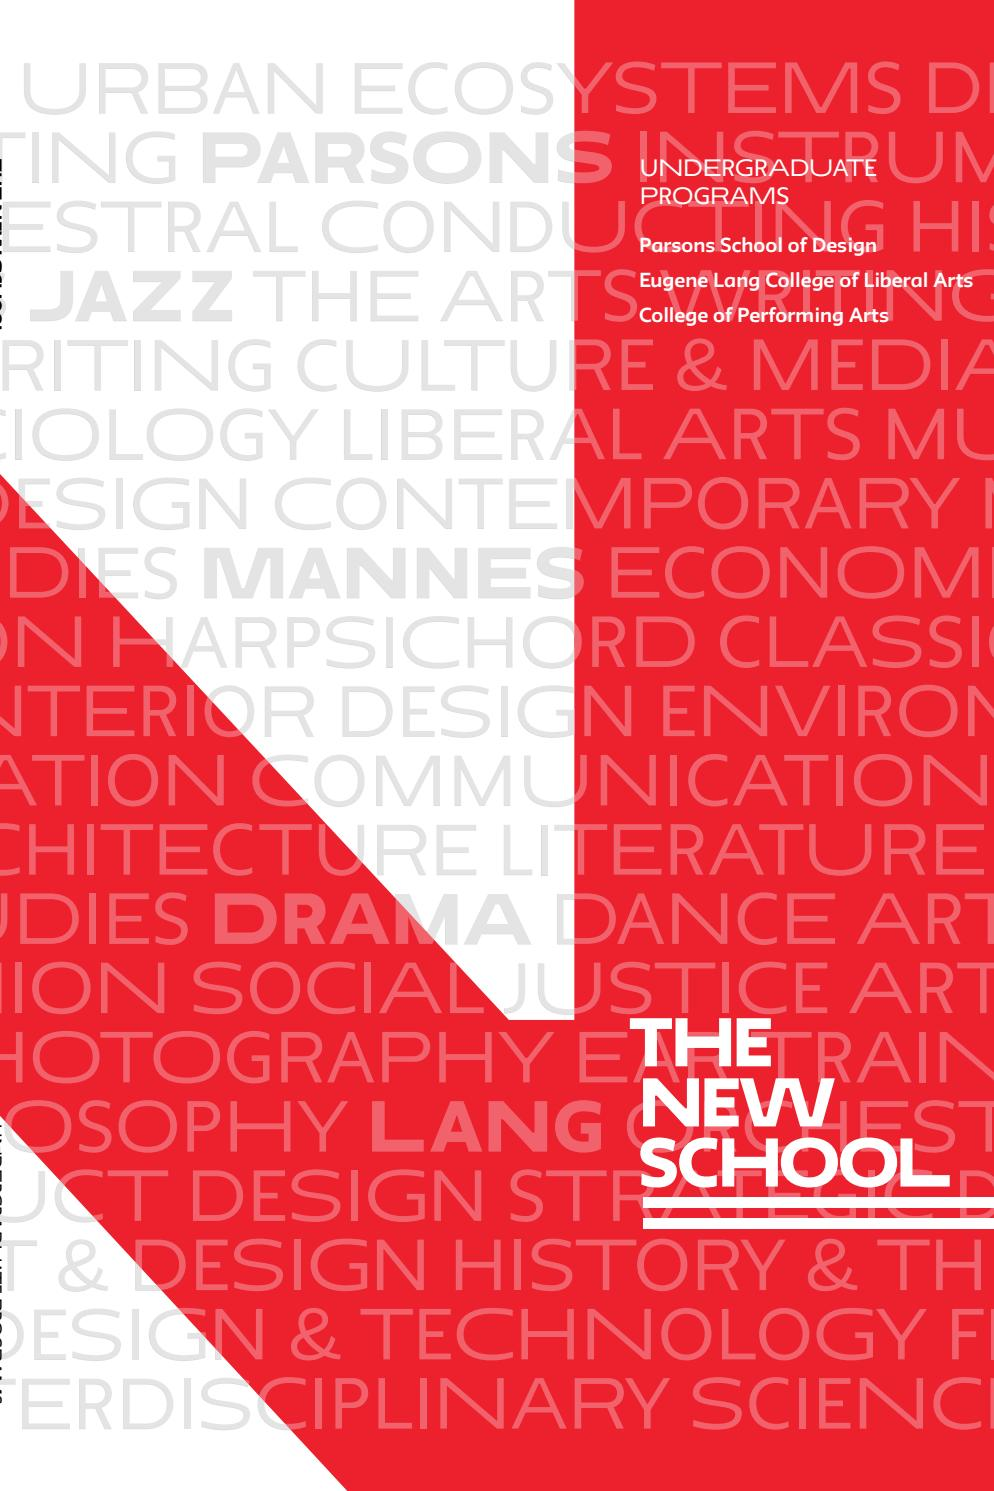 Undergraduate Programs At The New School By The New School Issuu